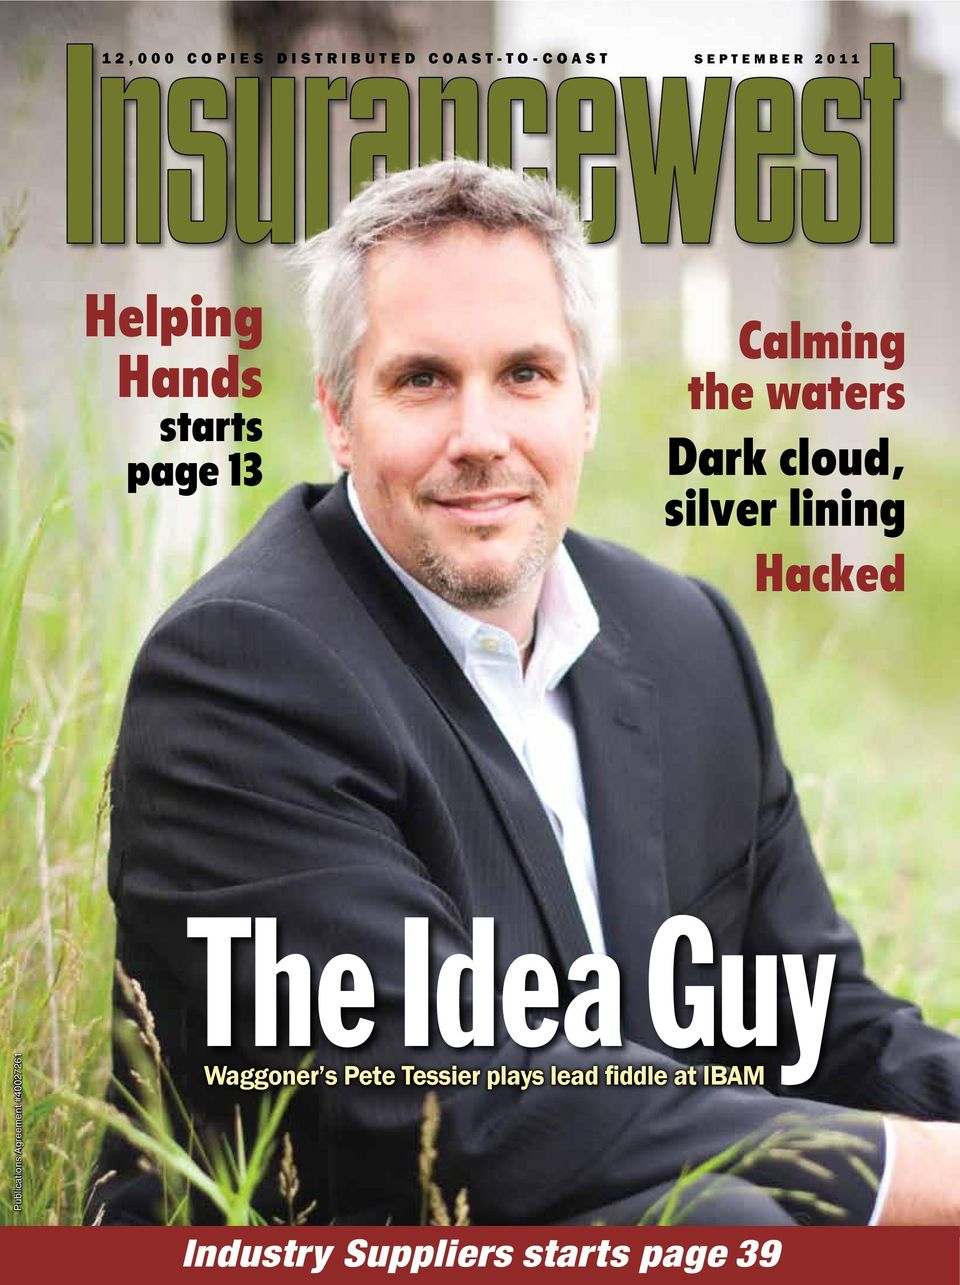 cloud, silver lining Hacked Publications Agreement #40027261 The Idea Guy